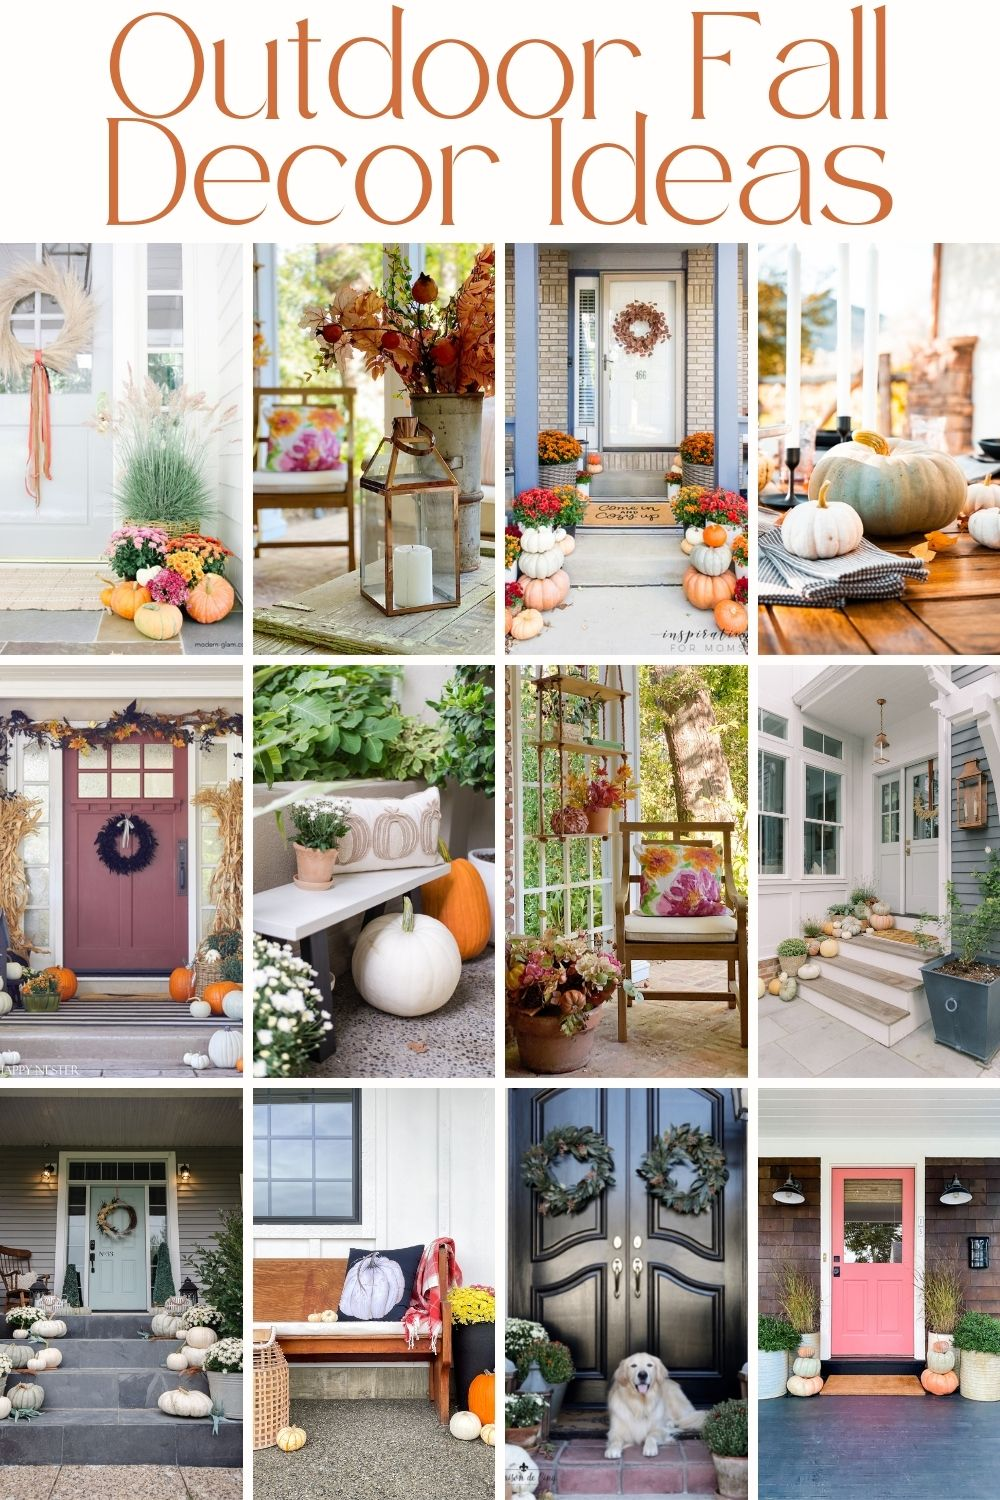 Fall is officially here and it is time to decorate your porch with outdoor fall decor. I love the fall pumpkins and fall pillows.